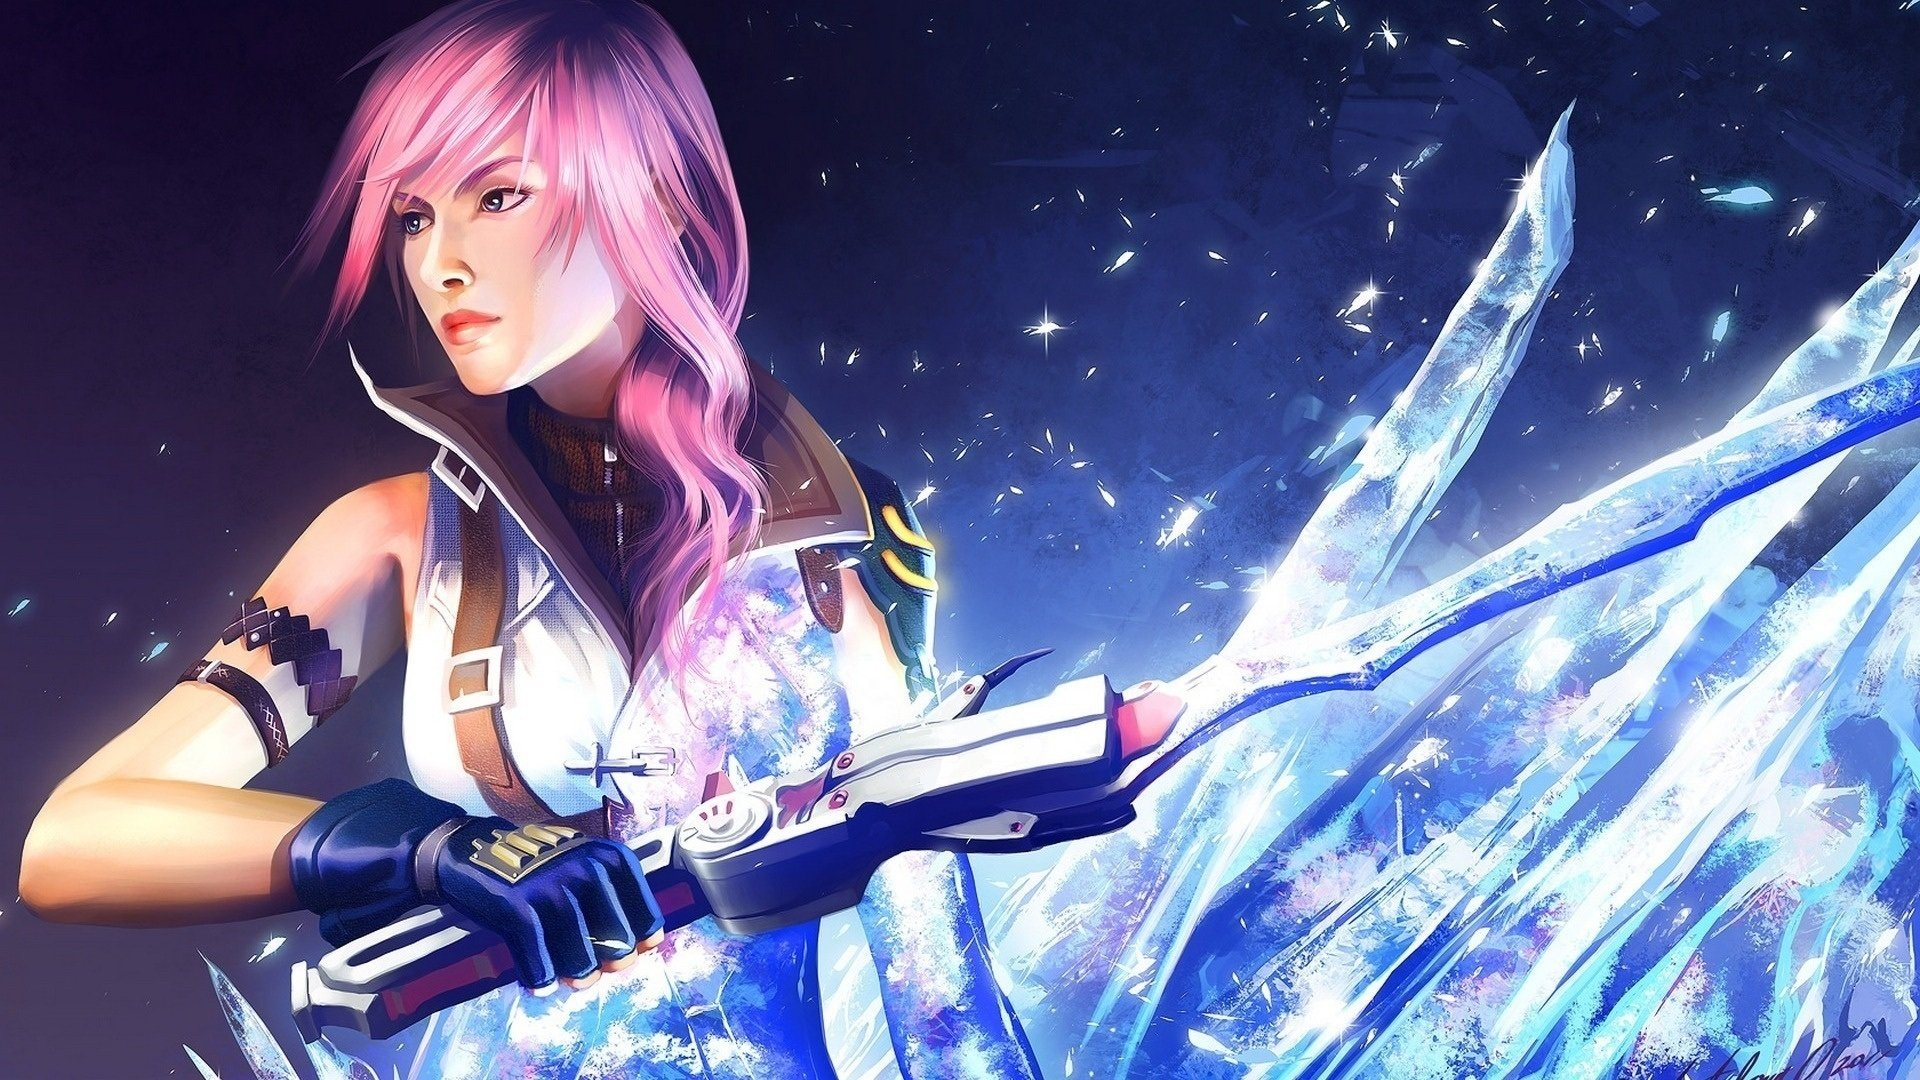 final fantasy xiii full hd wallpaper and background image